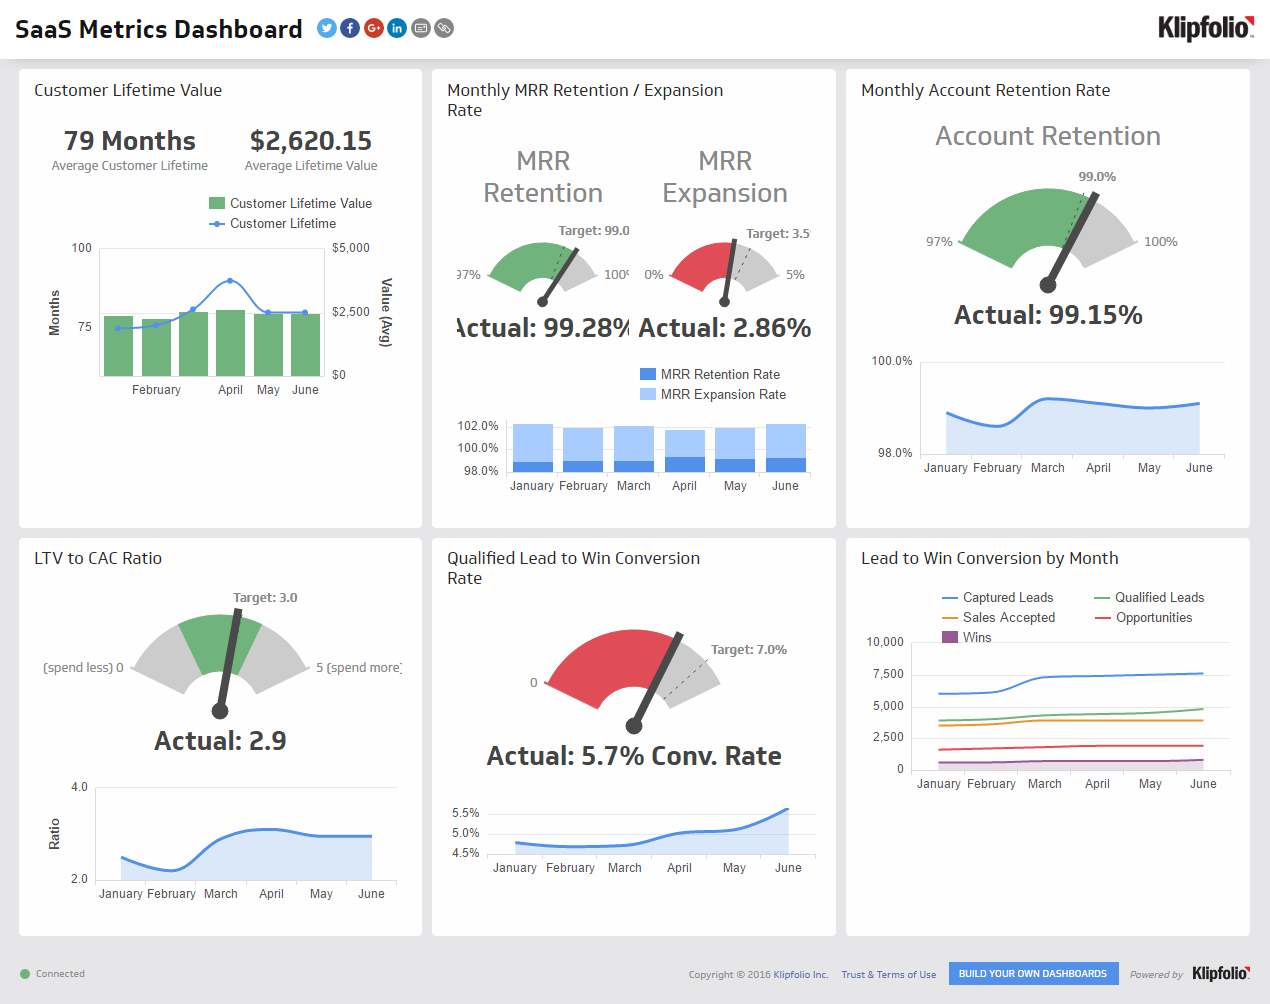 Dashboard Examples and Templates - Explore 60+ Dashboards - Klipfolio